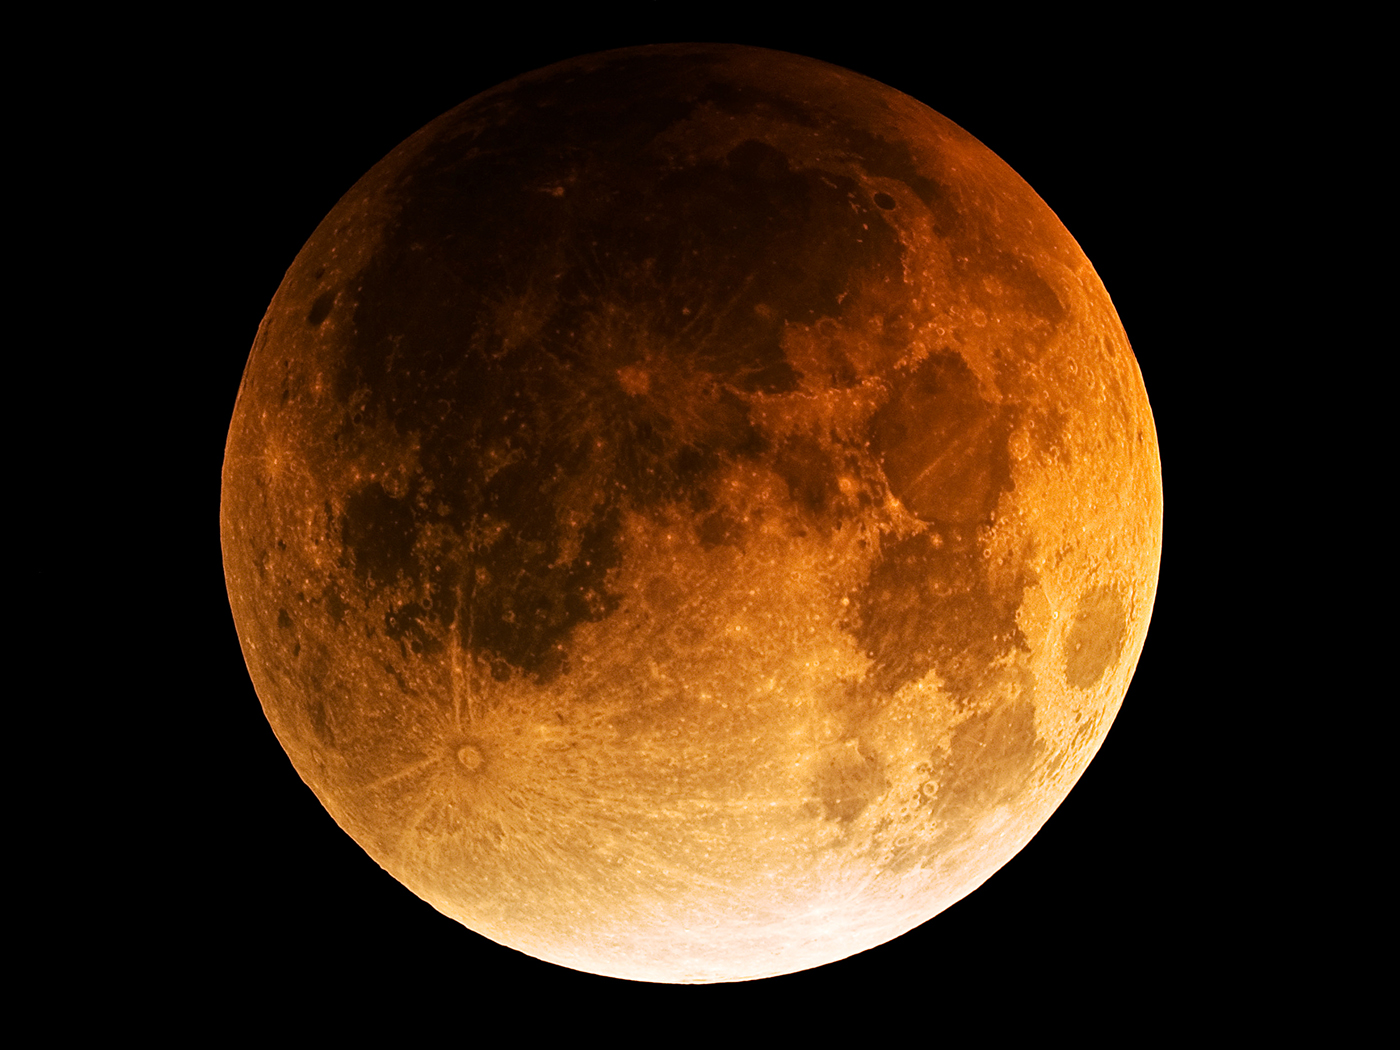 Meteorite Impact Observed During Lunar Eclipse